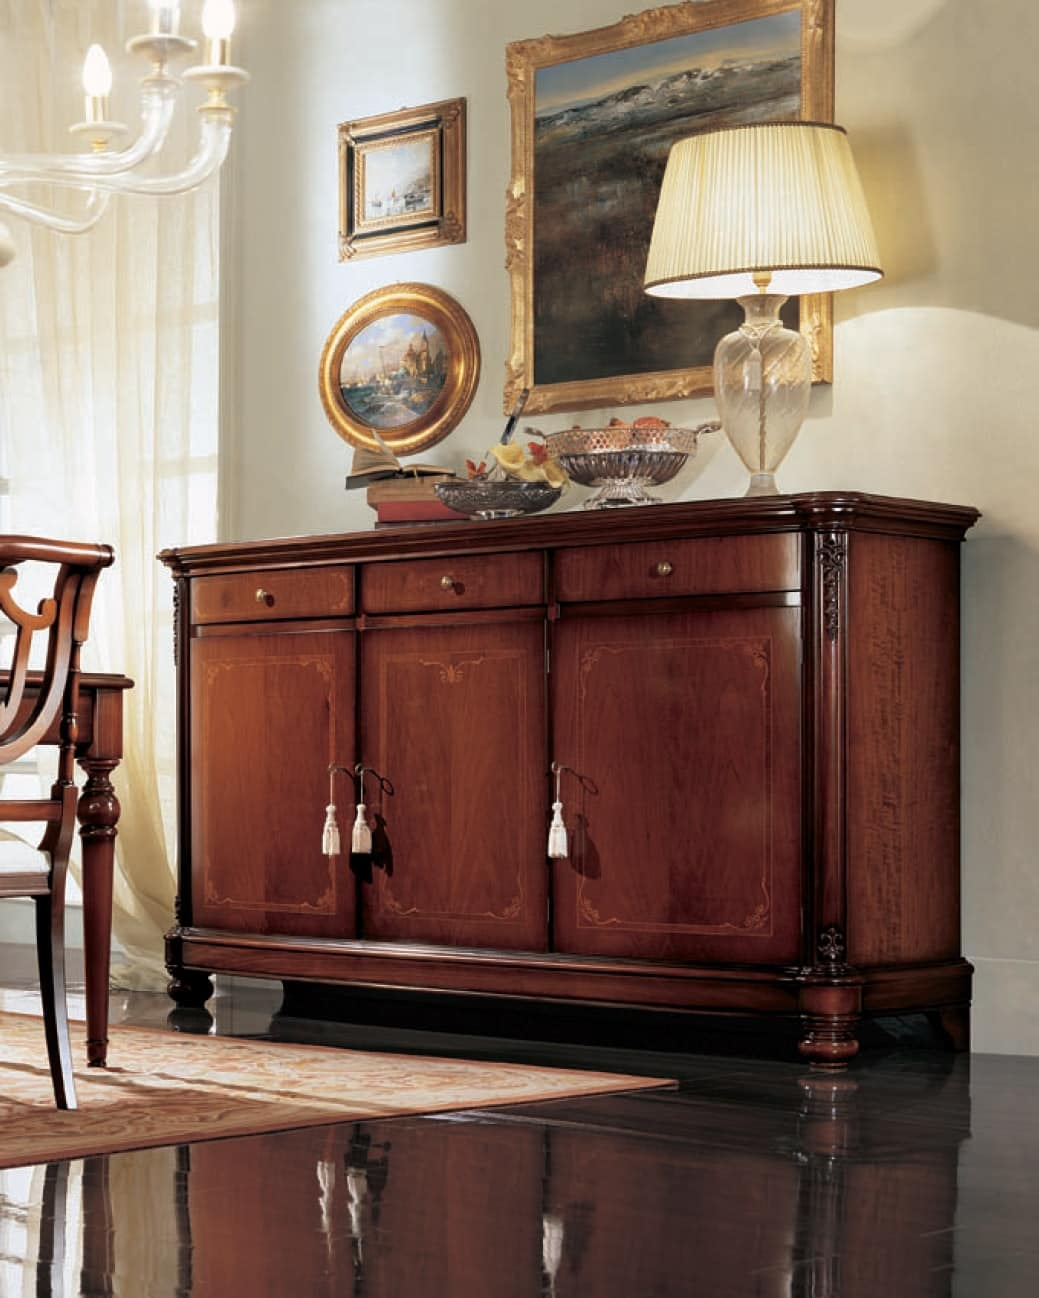 Gardenia sideboard, Sideboard with curved side doors, in classic style